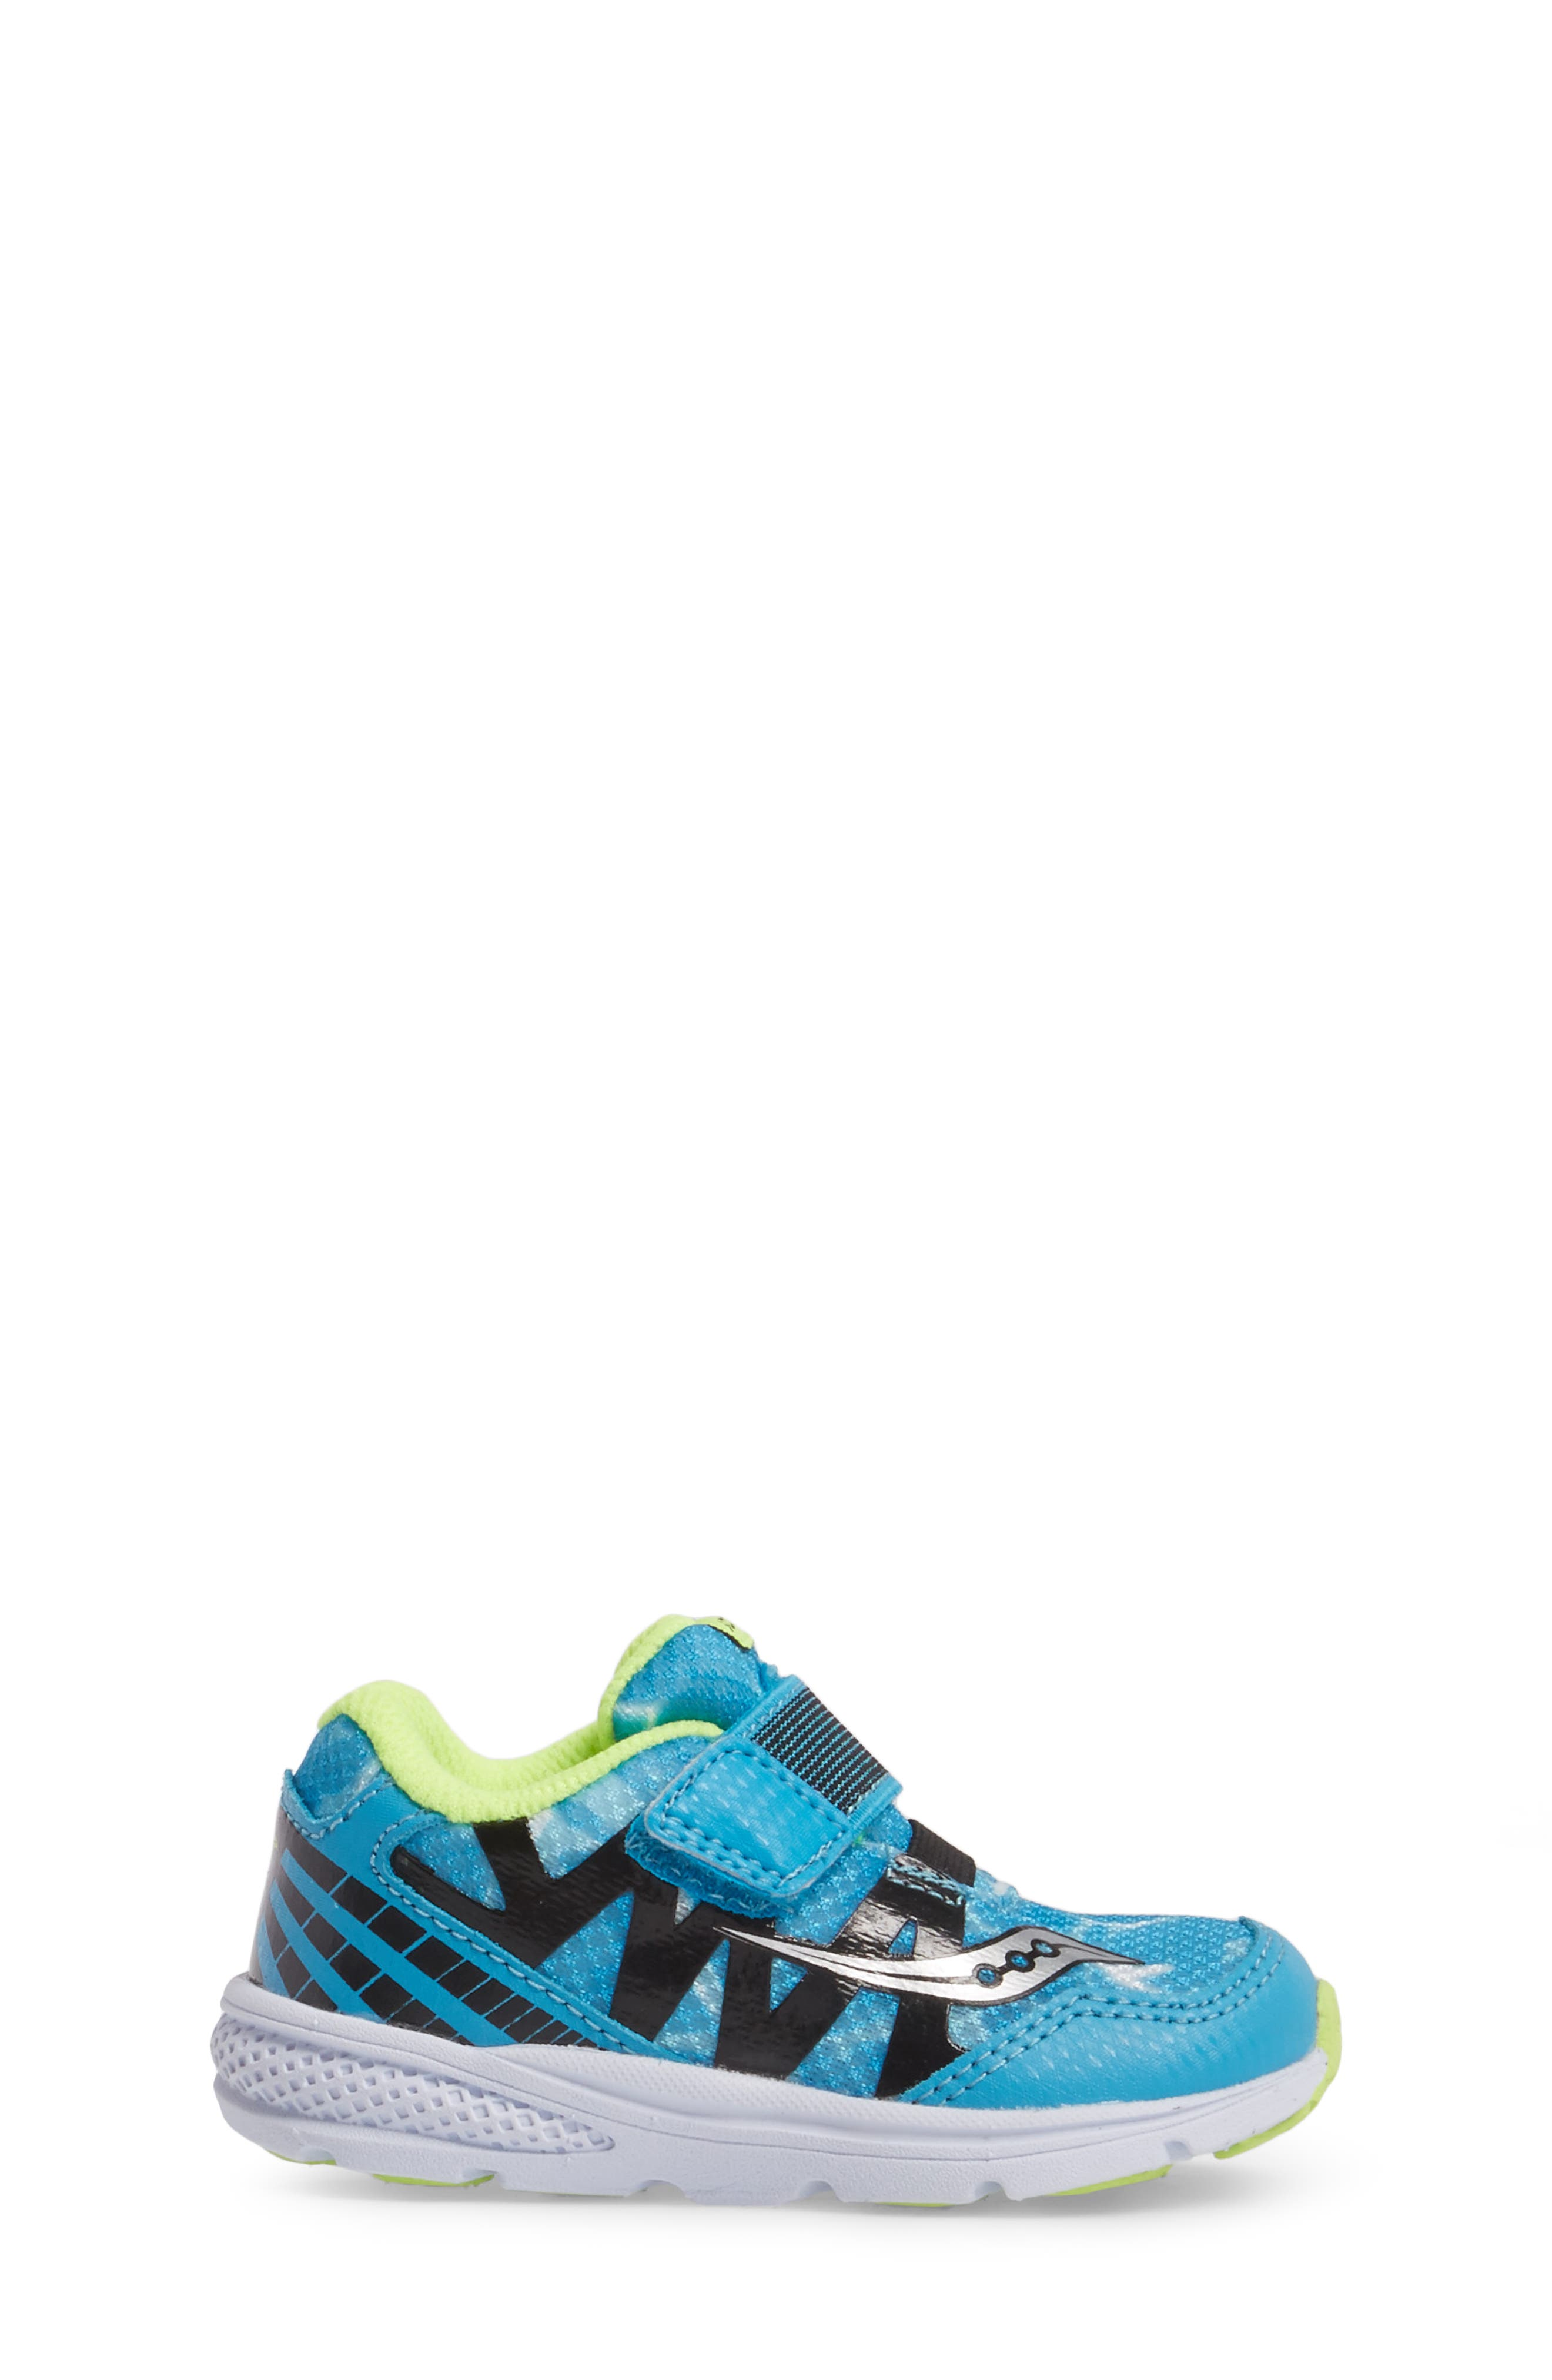 Baby Ride Pro Sneaker,                             Alternate thumbnail 3, color,                             Ocean Wave